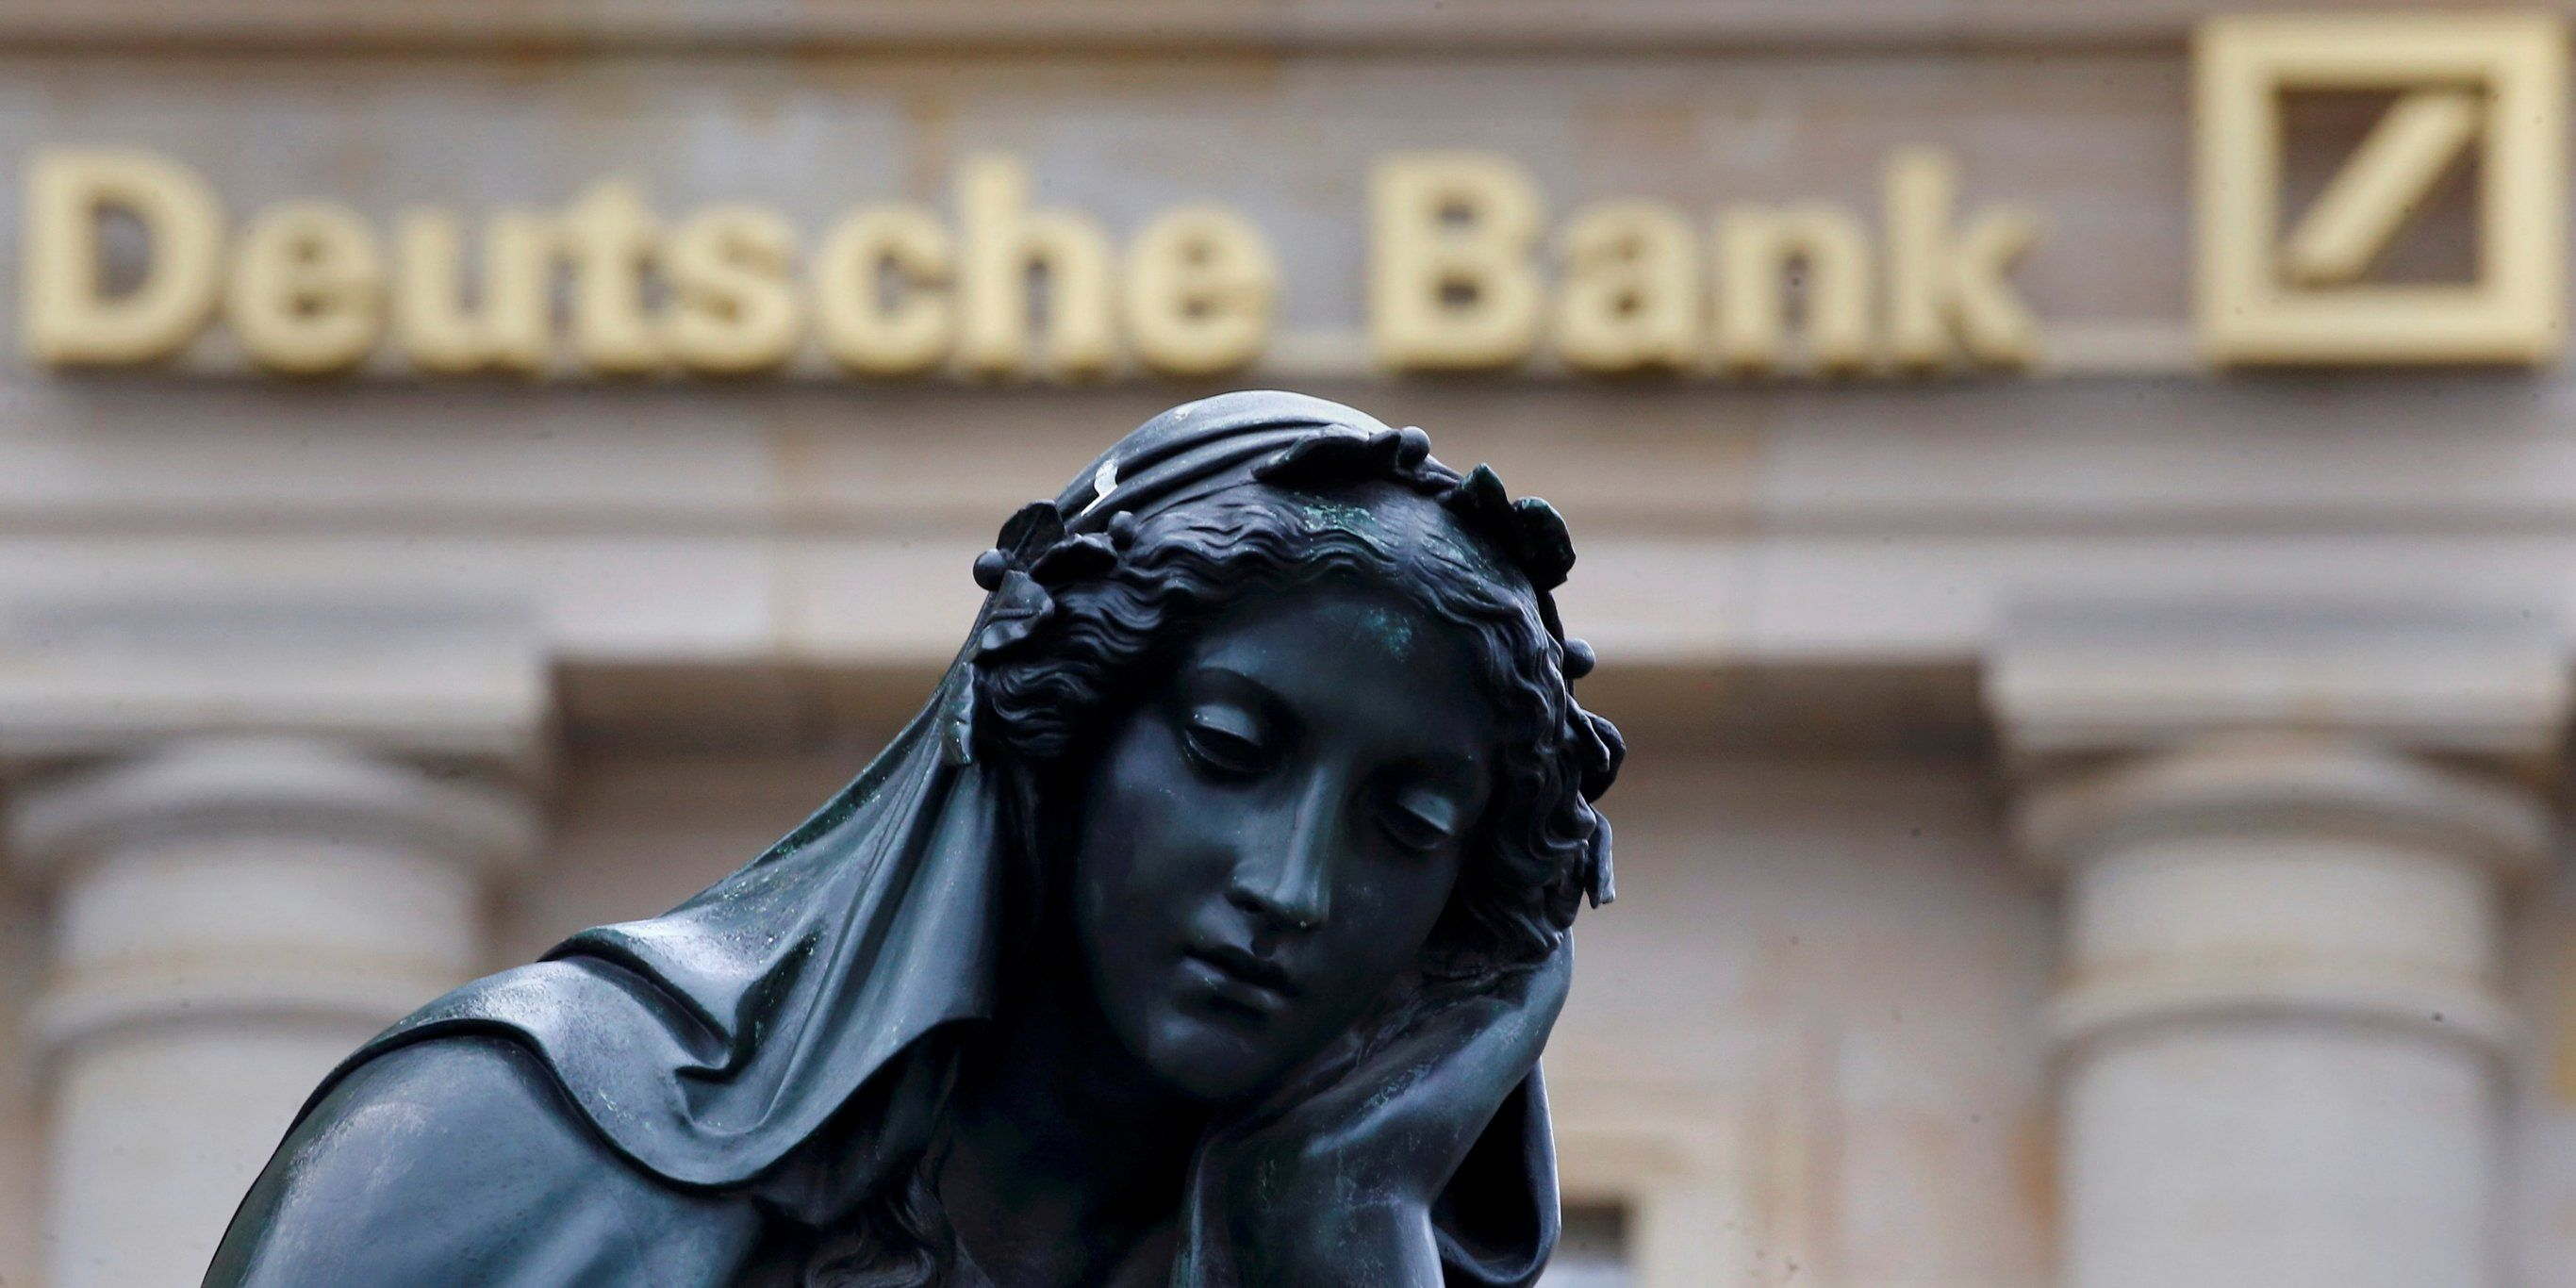 Deutsche Bank is mulling a big pull back from Britain due